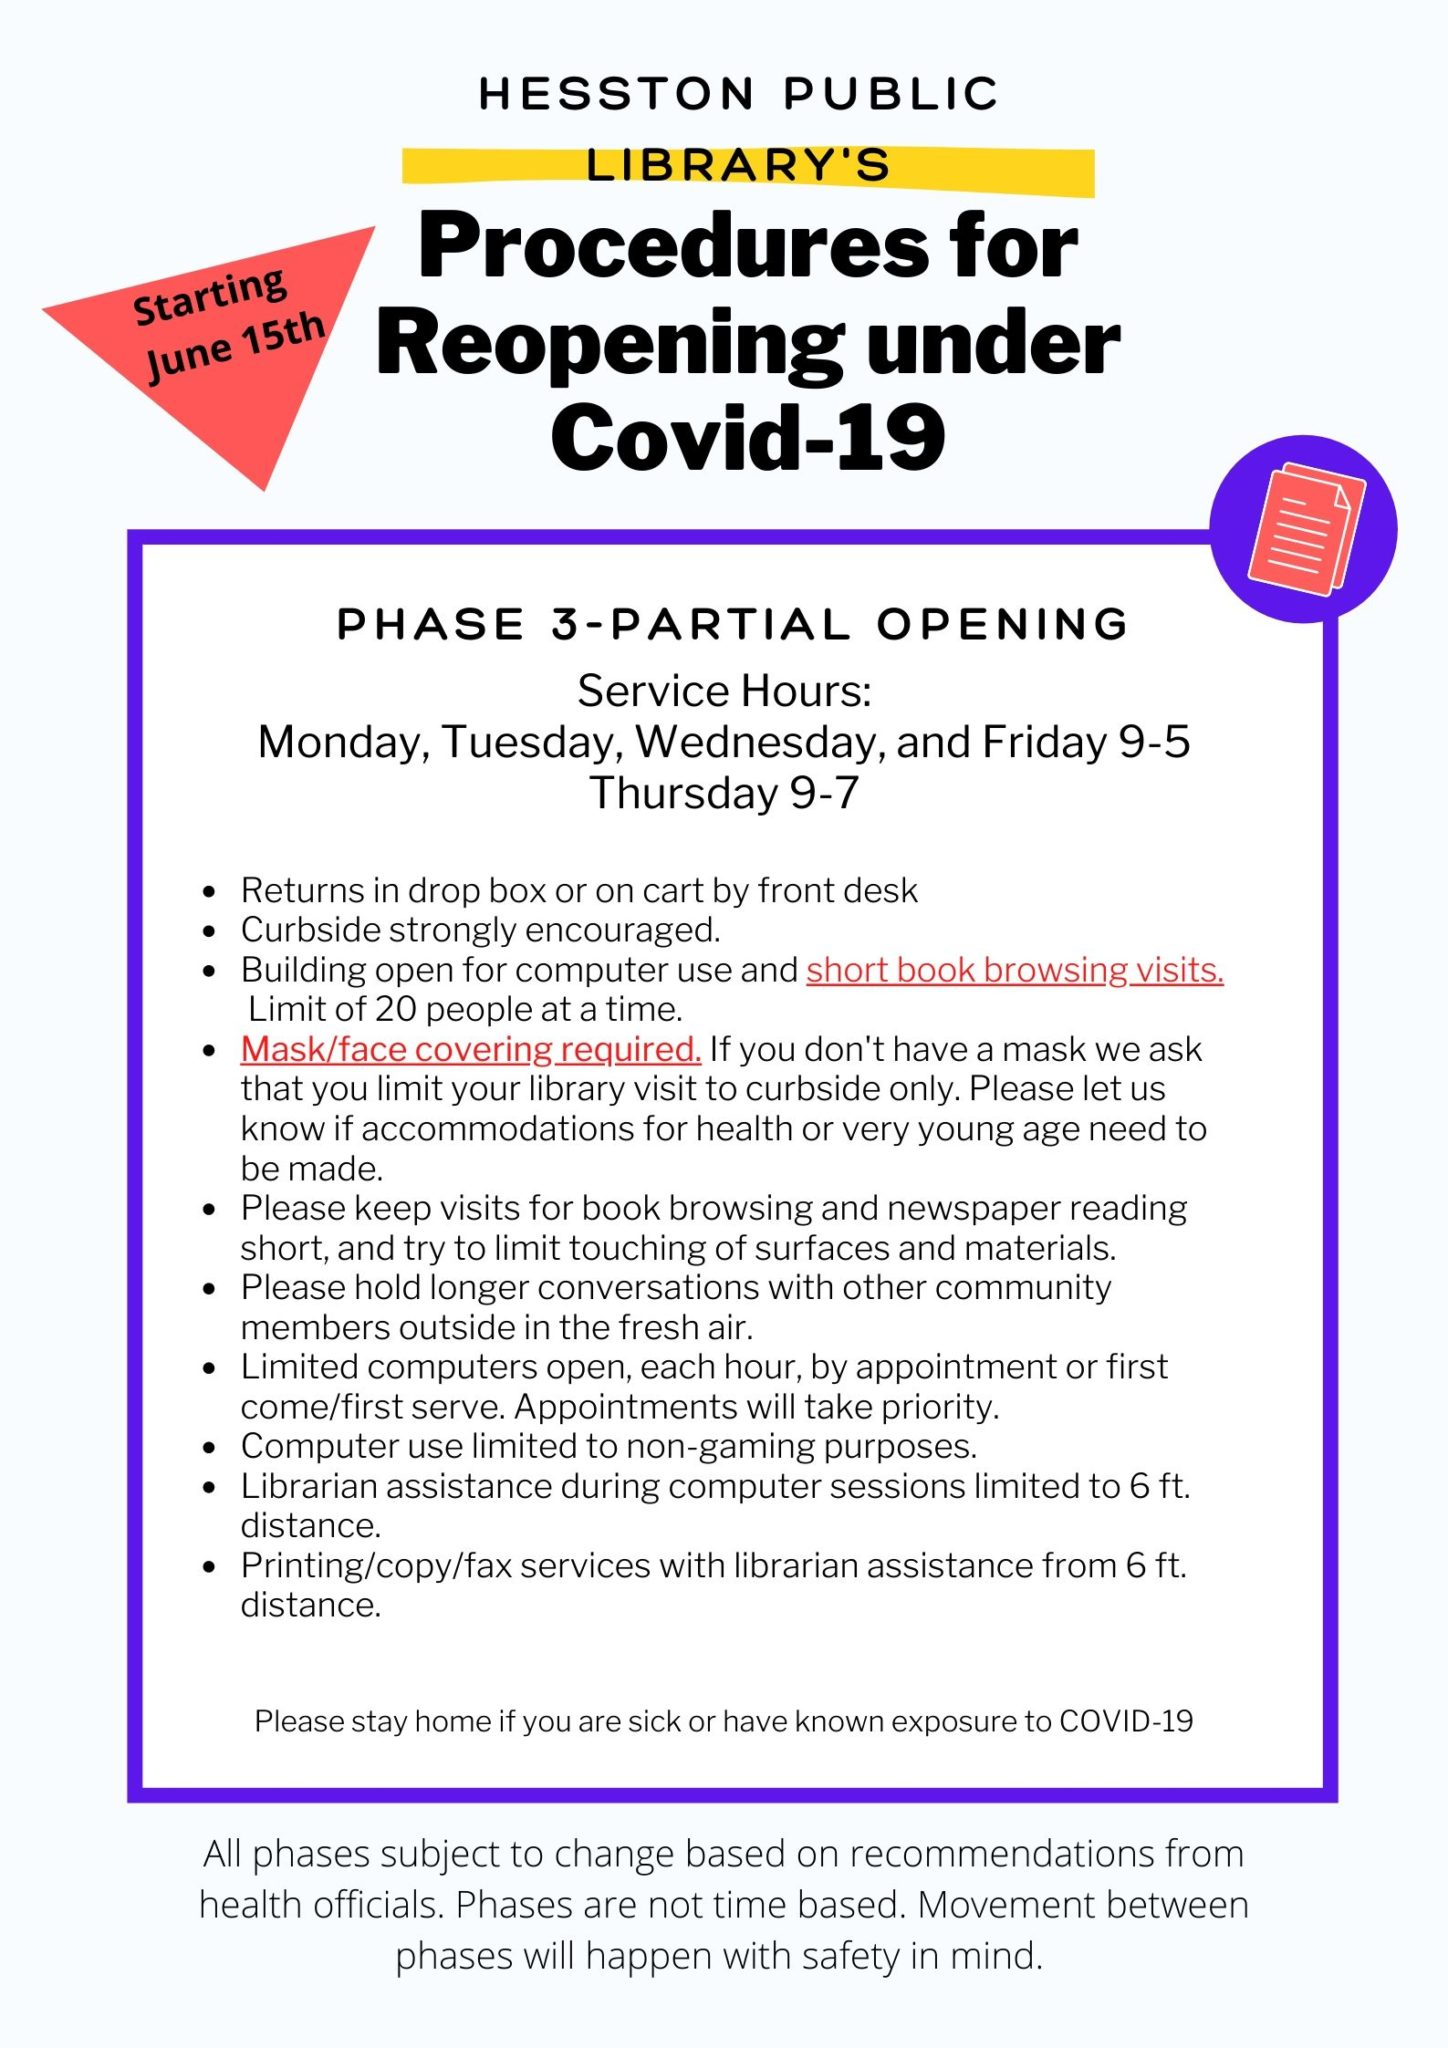 Reopening under Covid-19